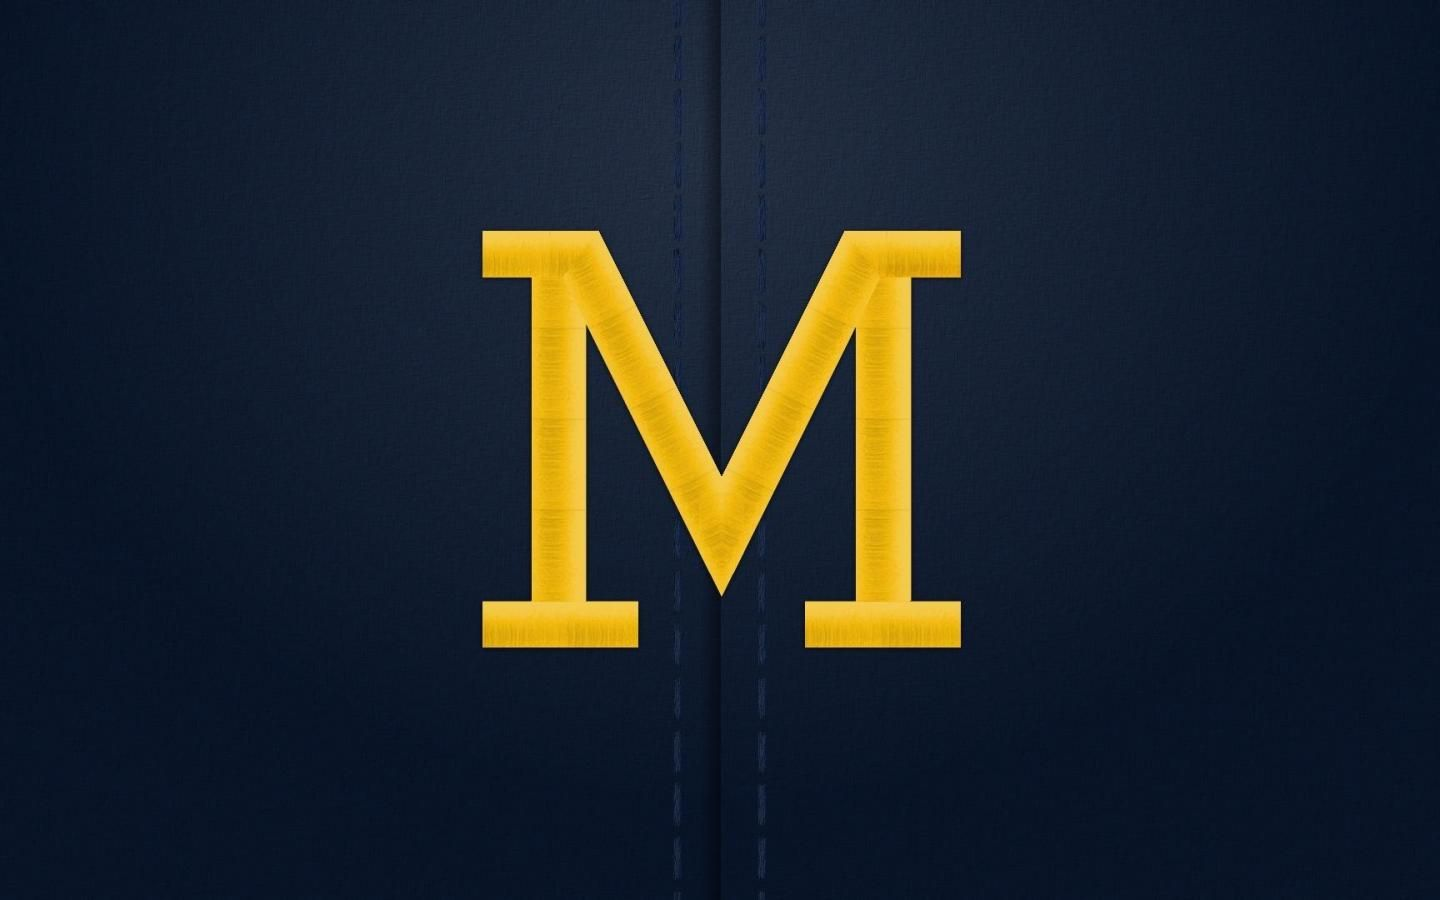 9 Best Detroit Wallpaper Hd Resolution For Your Pc Desktop Or Mac Wallpapers View And Downlo Football Wallpaper Detroit Wallpaper Michigan Wolverines Football